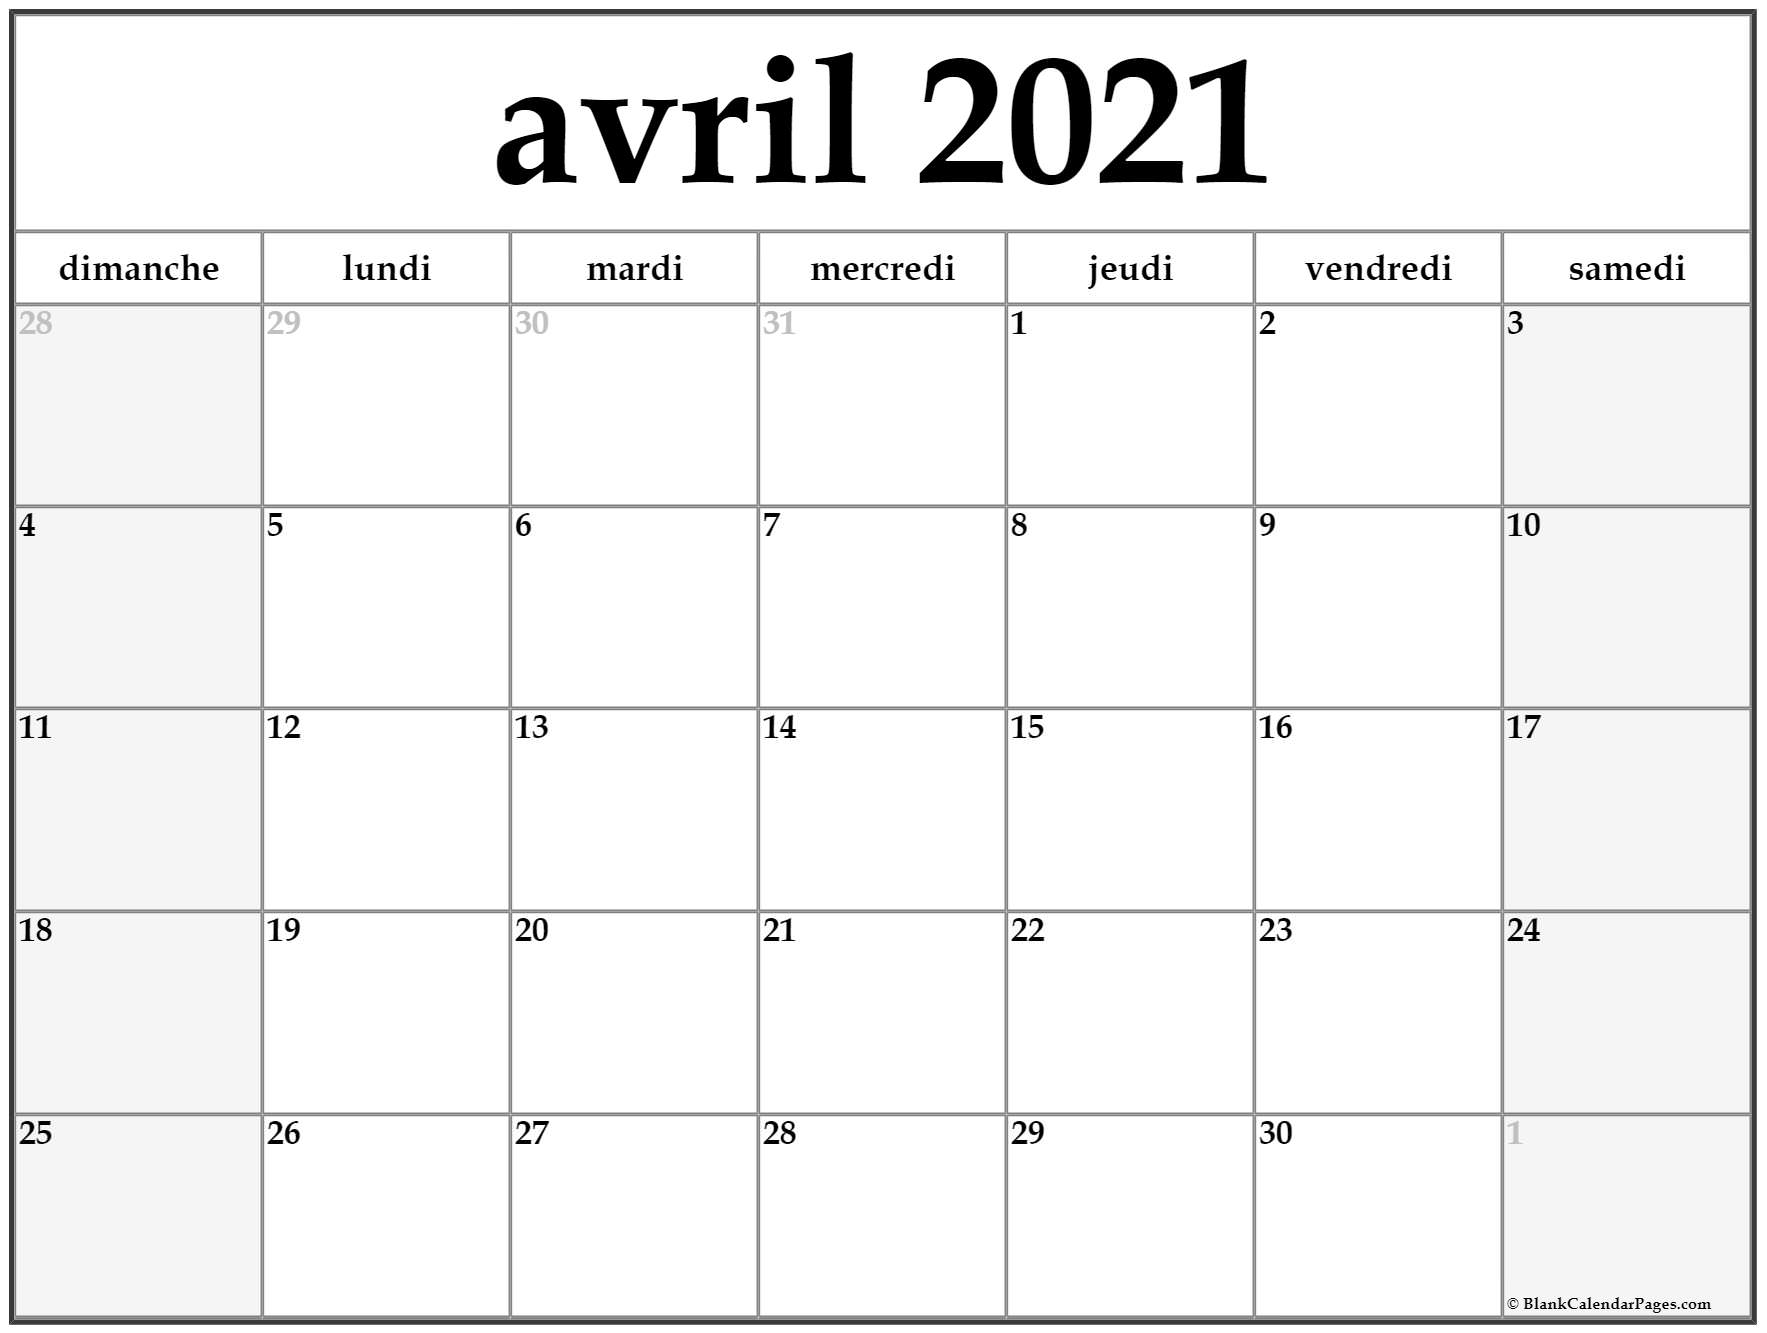 Avril 2021 Calendrier avril 2021 calendrier imprimable | calendrier gratuit